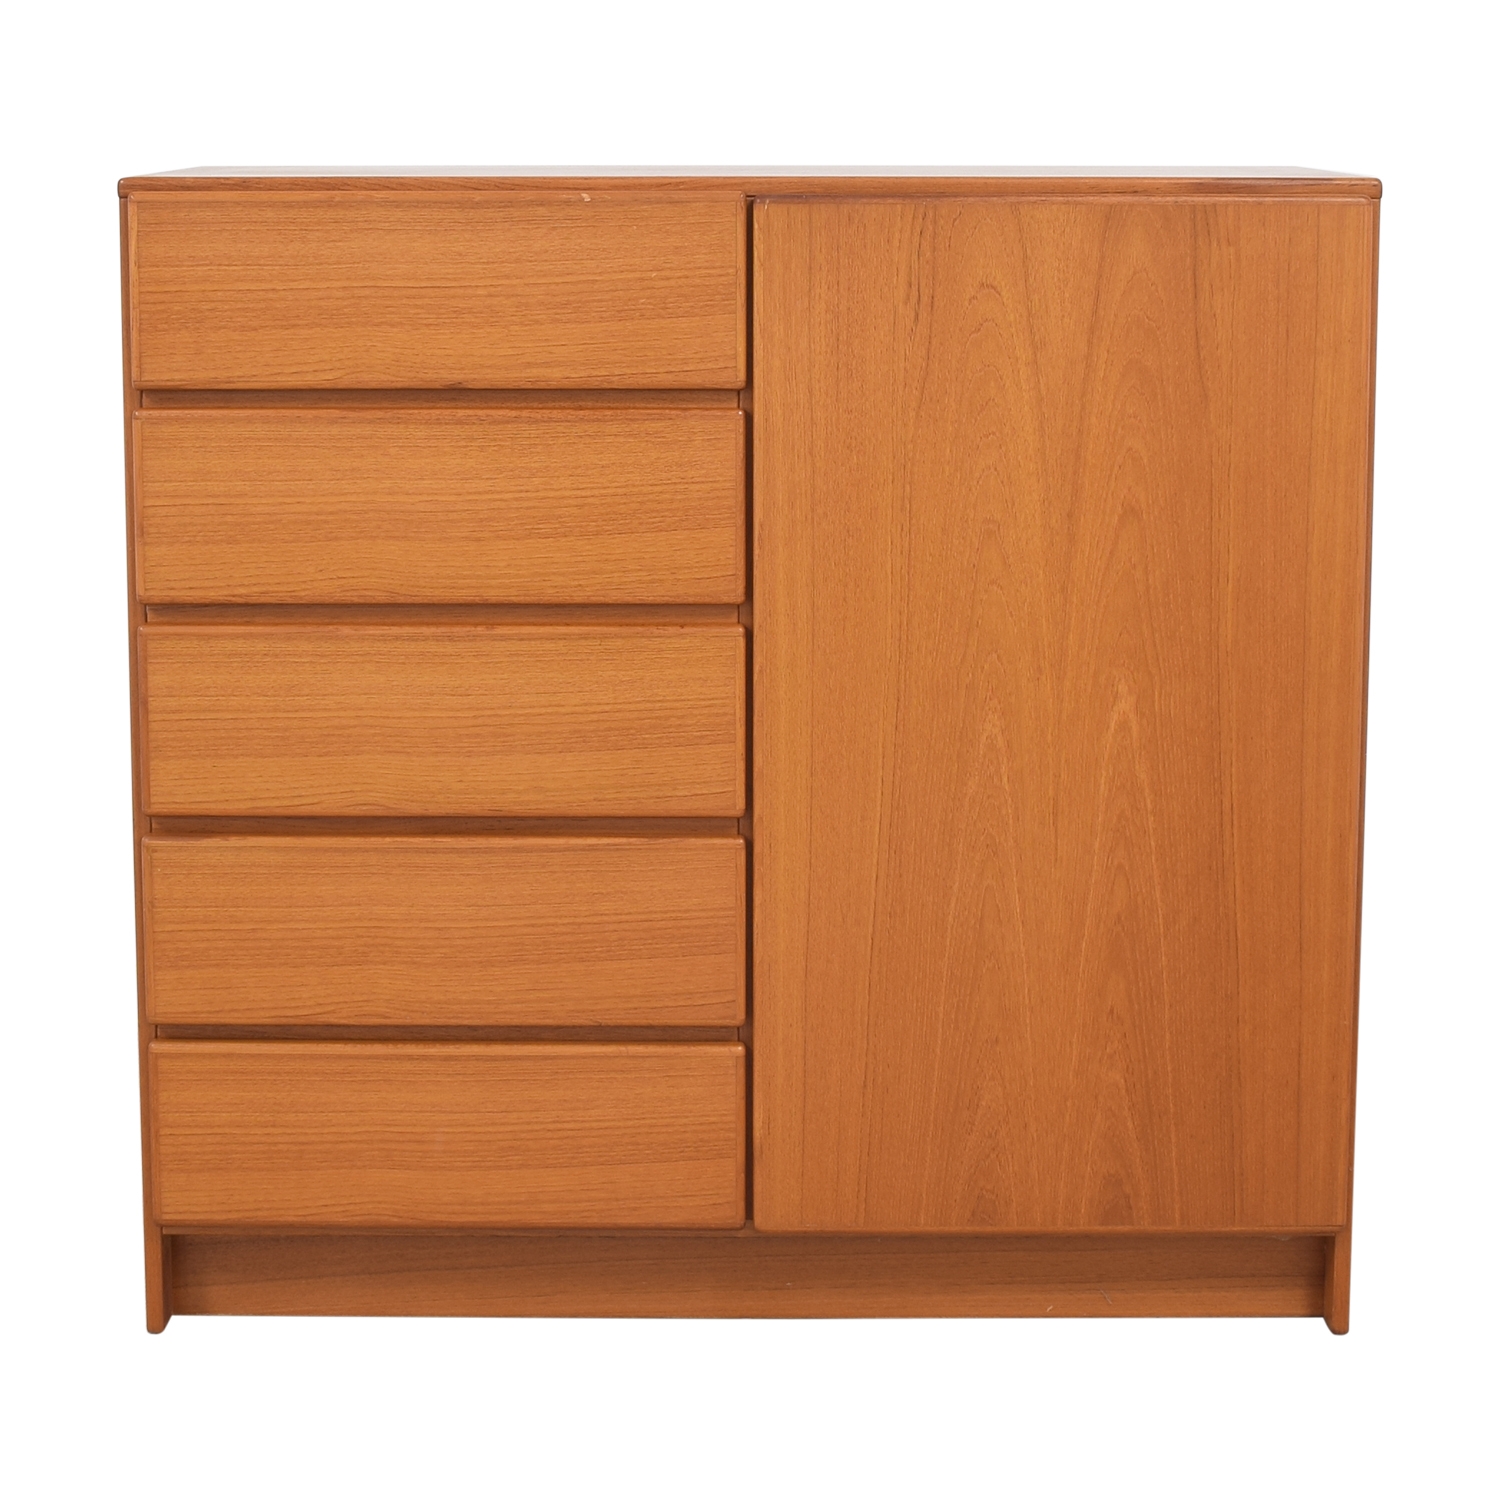 Scan Coll Scan Coll Tall Modern Dresser brown